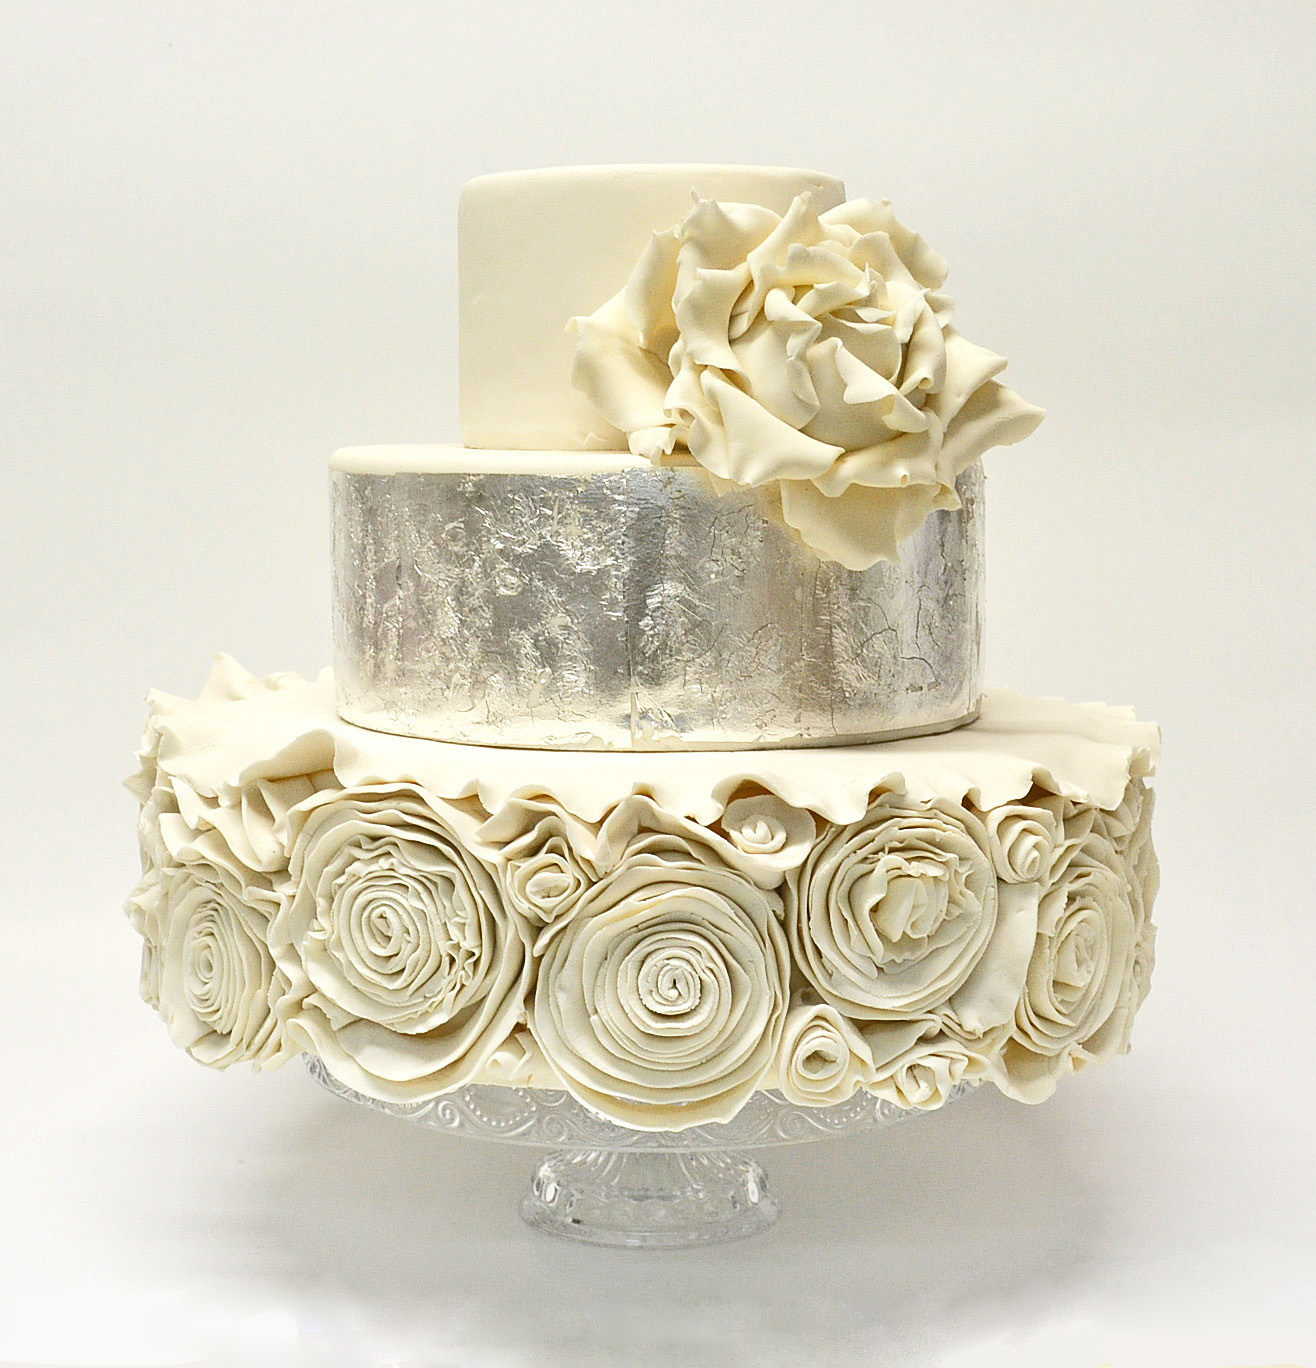 VERY ORNATE WHITE WEDDING CAKE WITH SILVER LEAF